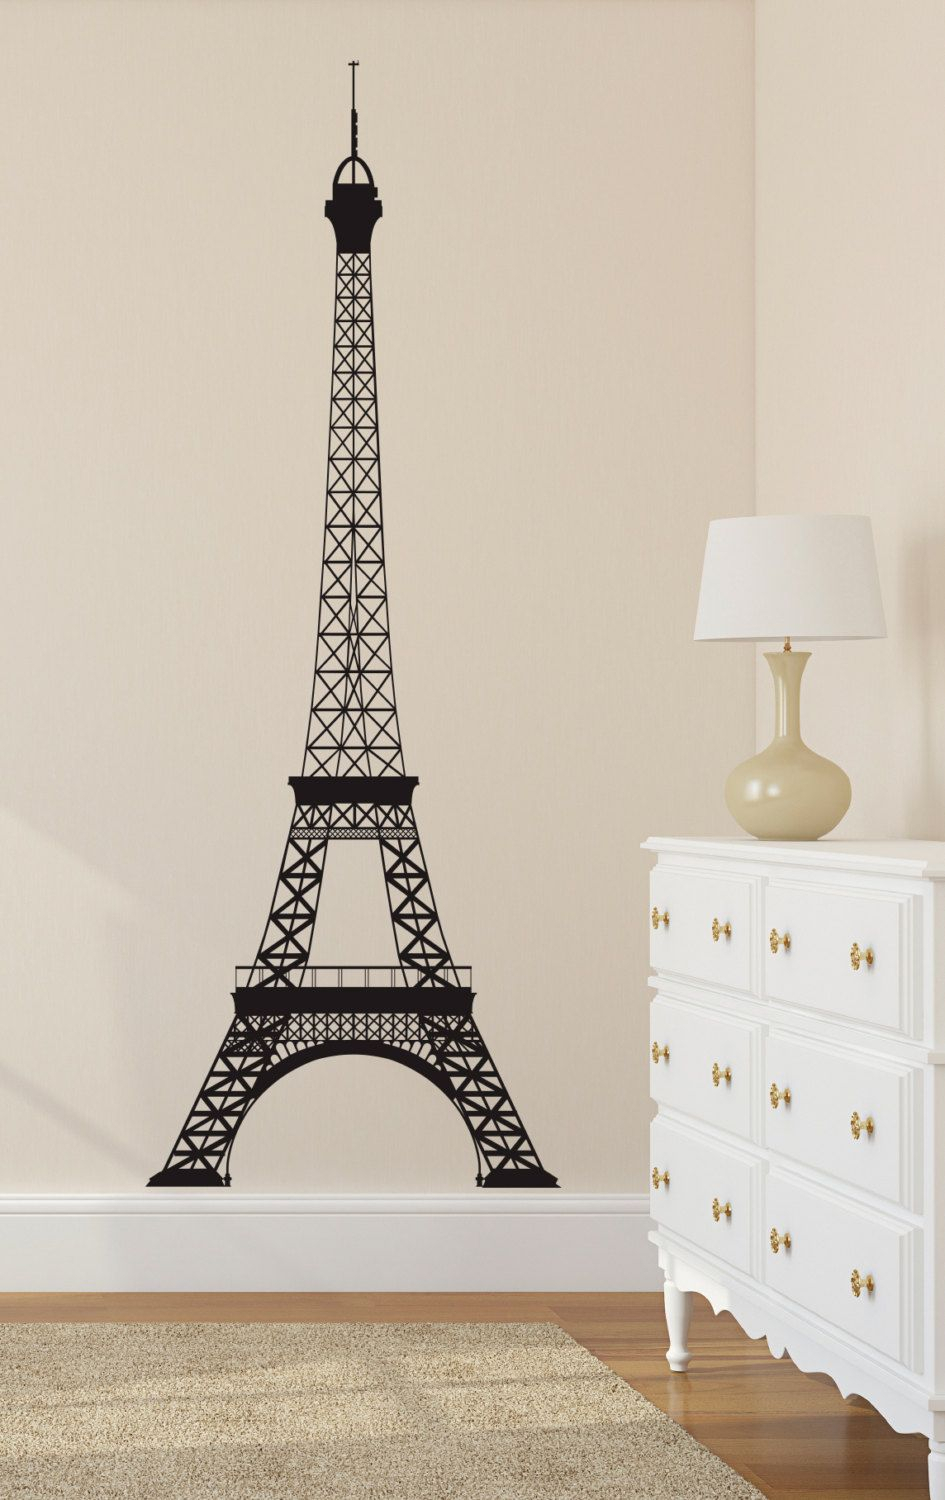 Eiffel Tower Wall Decal Paris Wall Decal Wall Decor La Tour Throughout Latour Wall Decor (Gallery 7 of 30)